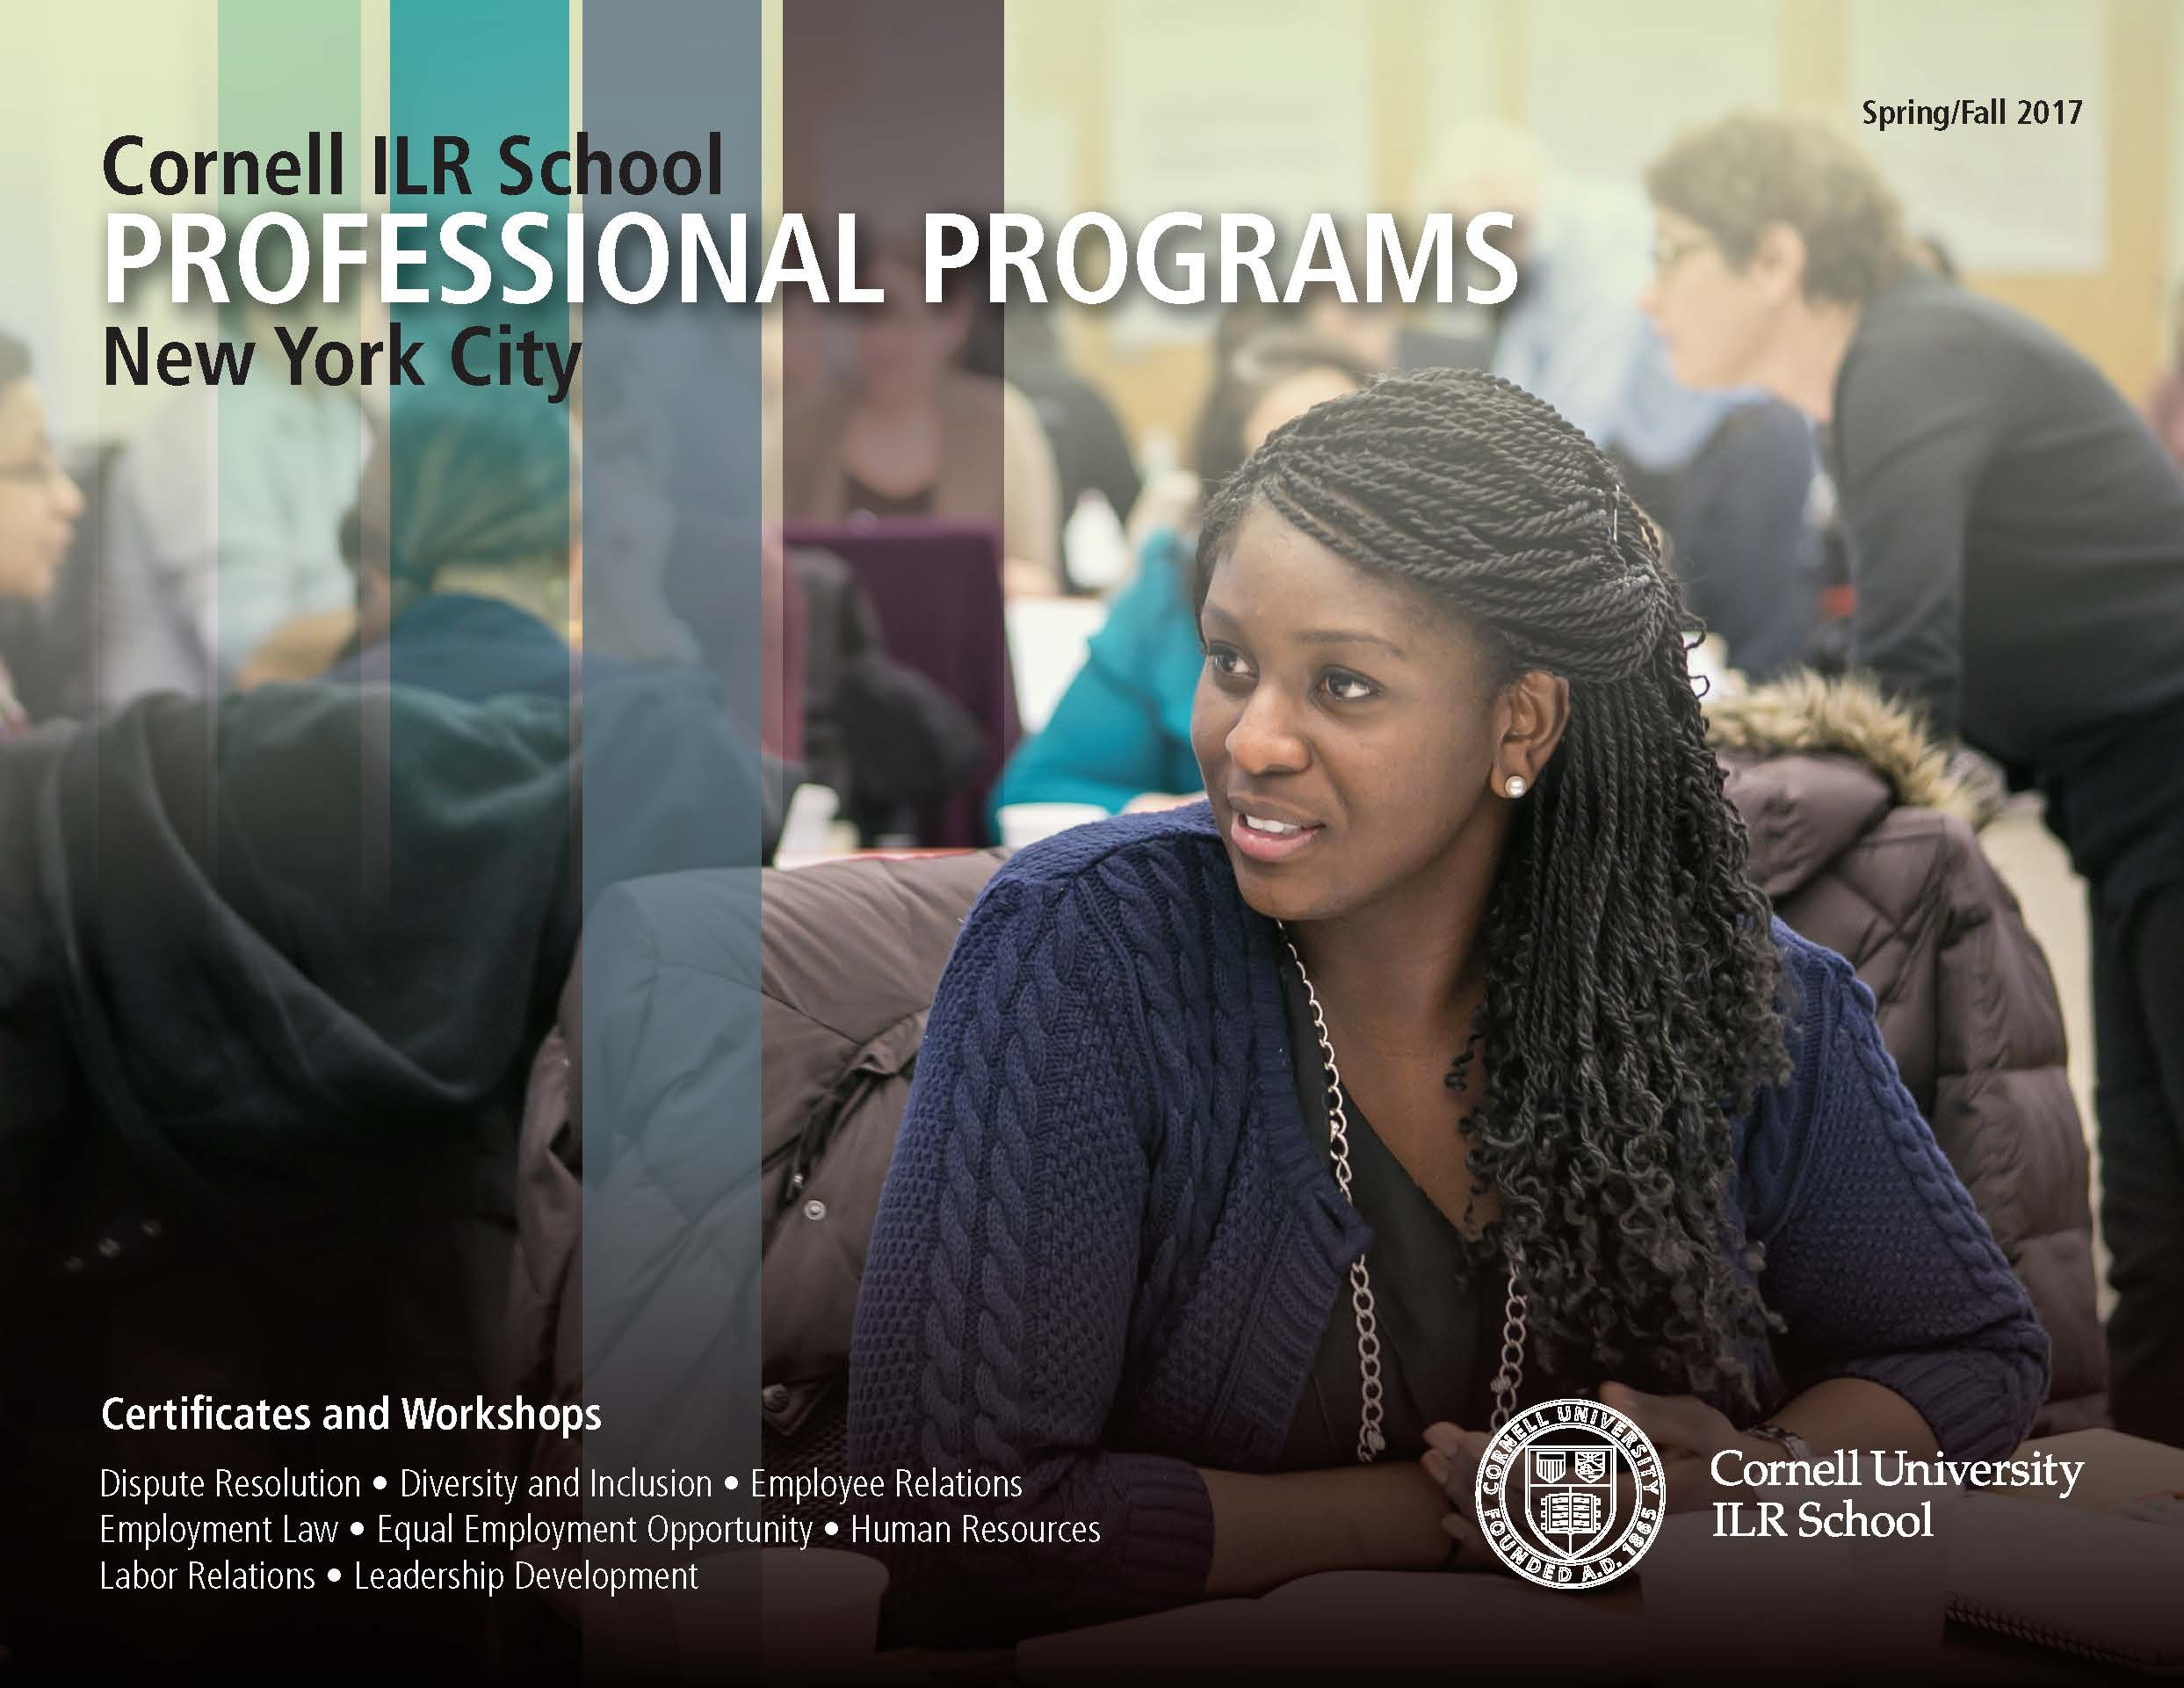 cornell, professional programs, new york city, cornell ilr, human capital development, hcd